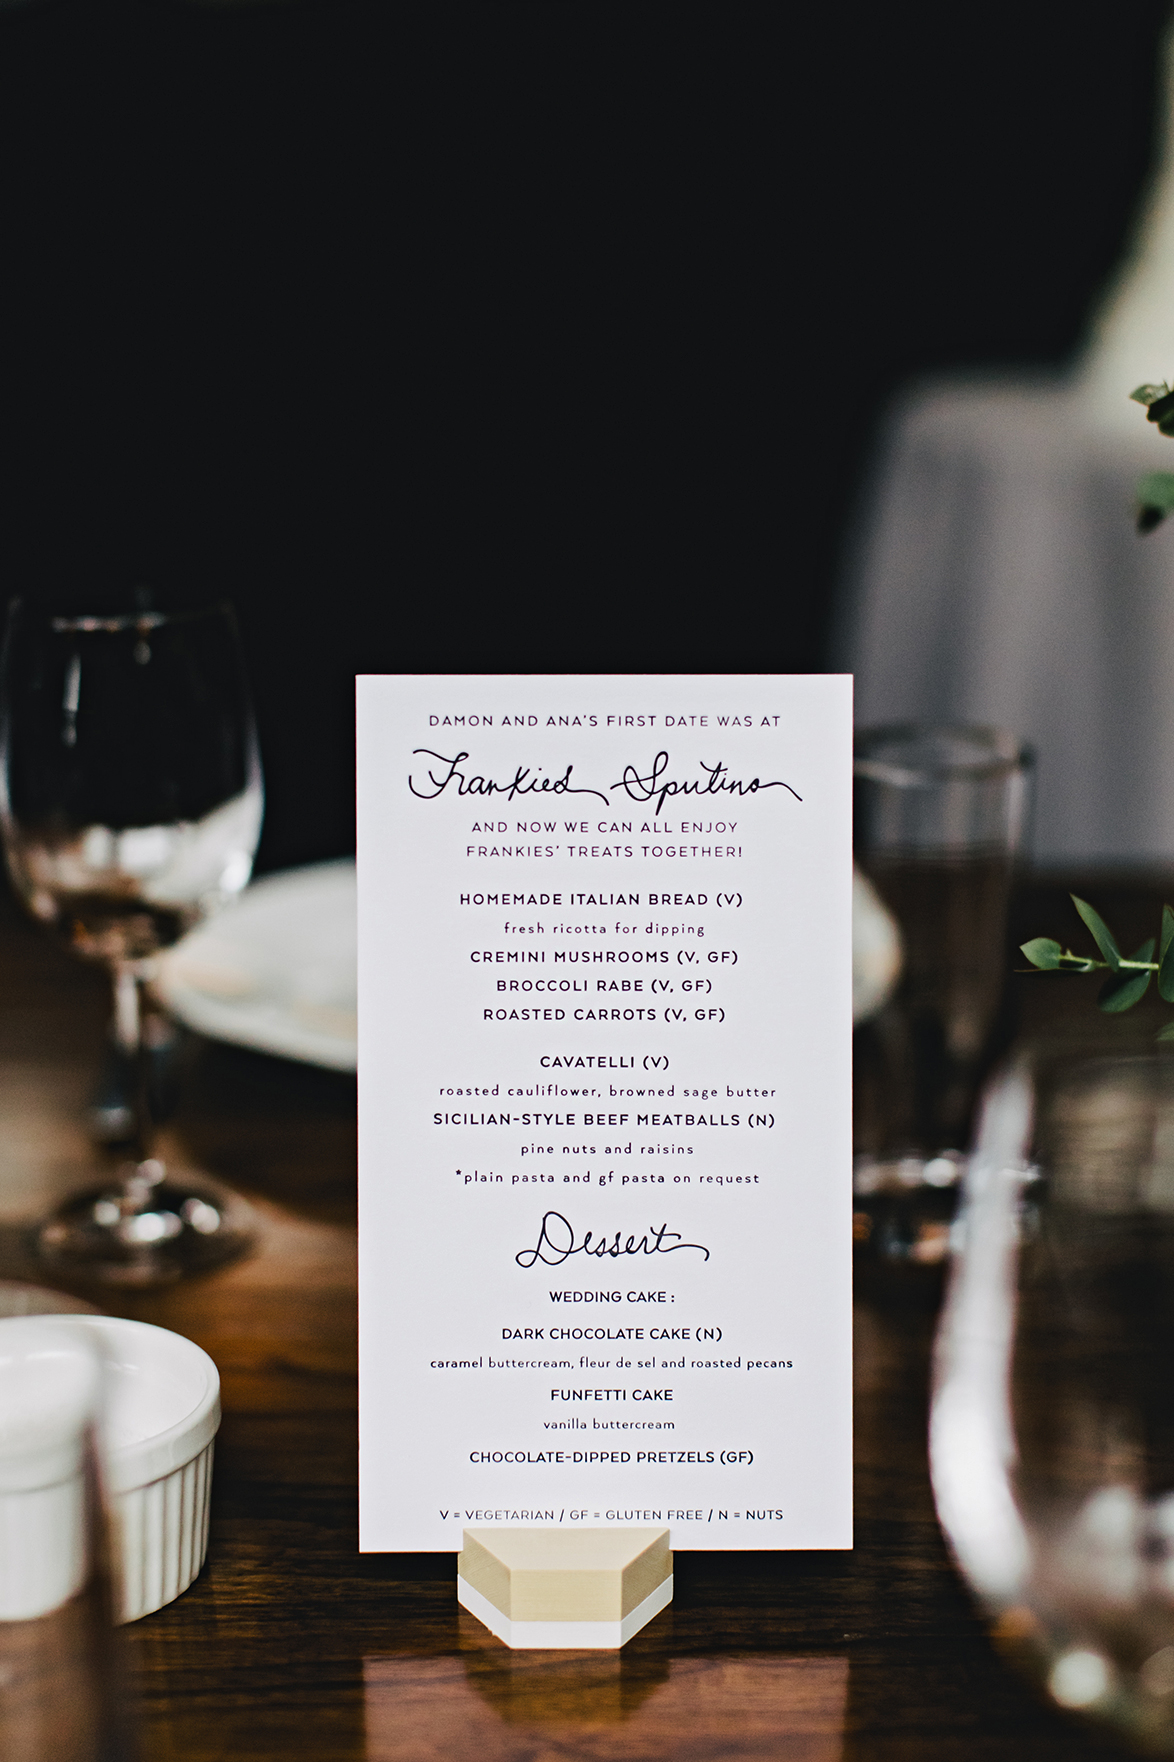 ana and damon menu on table